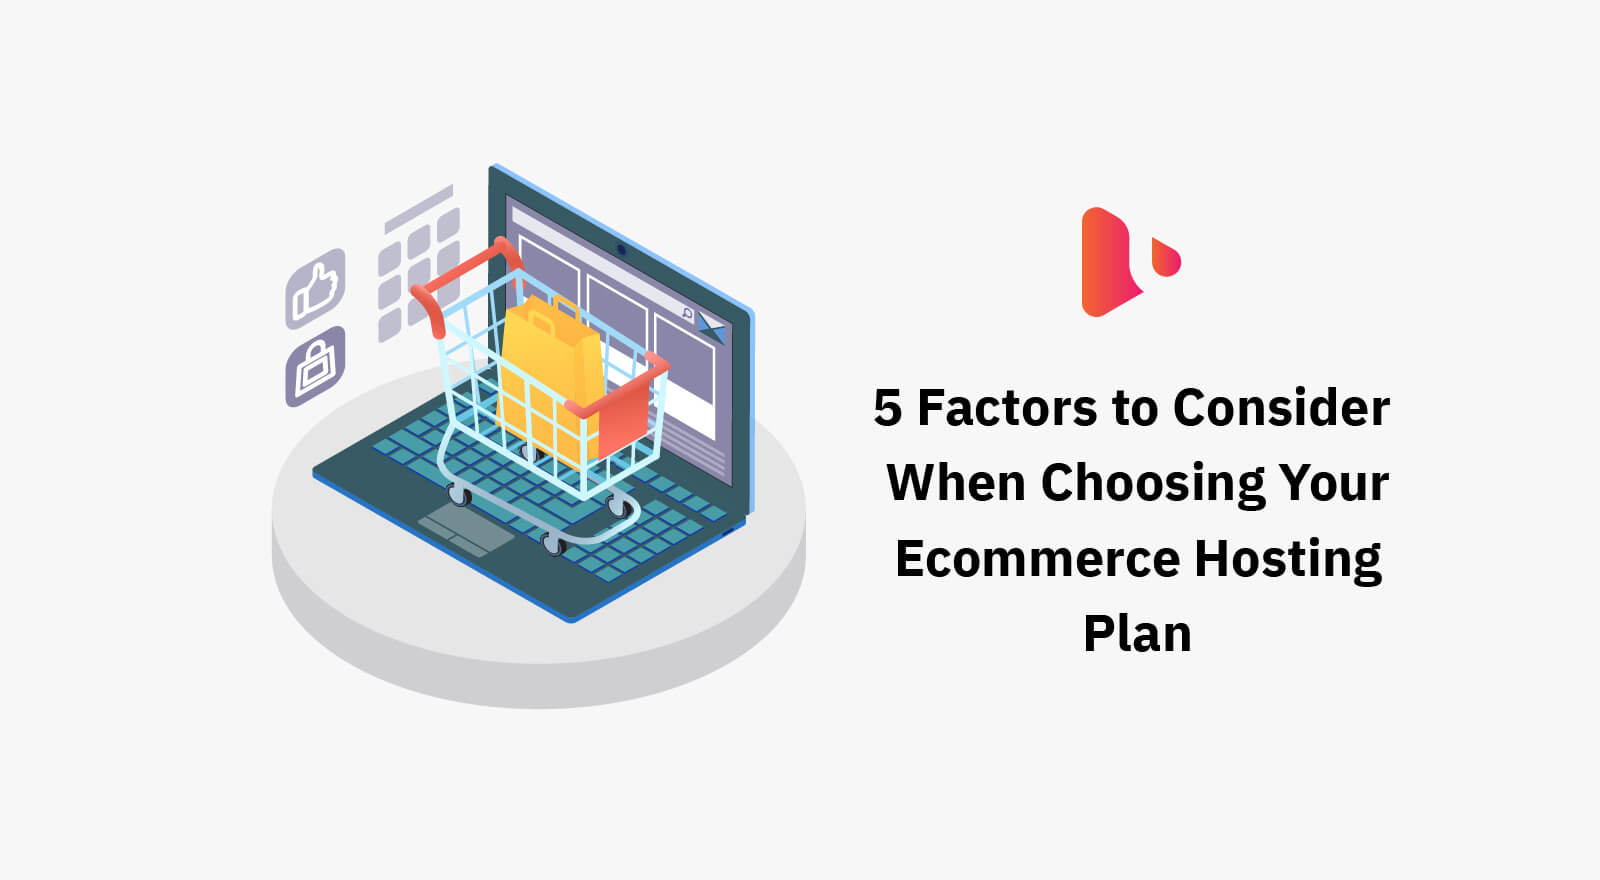 5 Factors to Consider When Choosing Your Ecommerce Hosting Plan